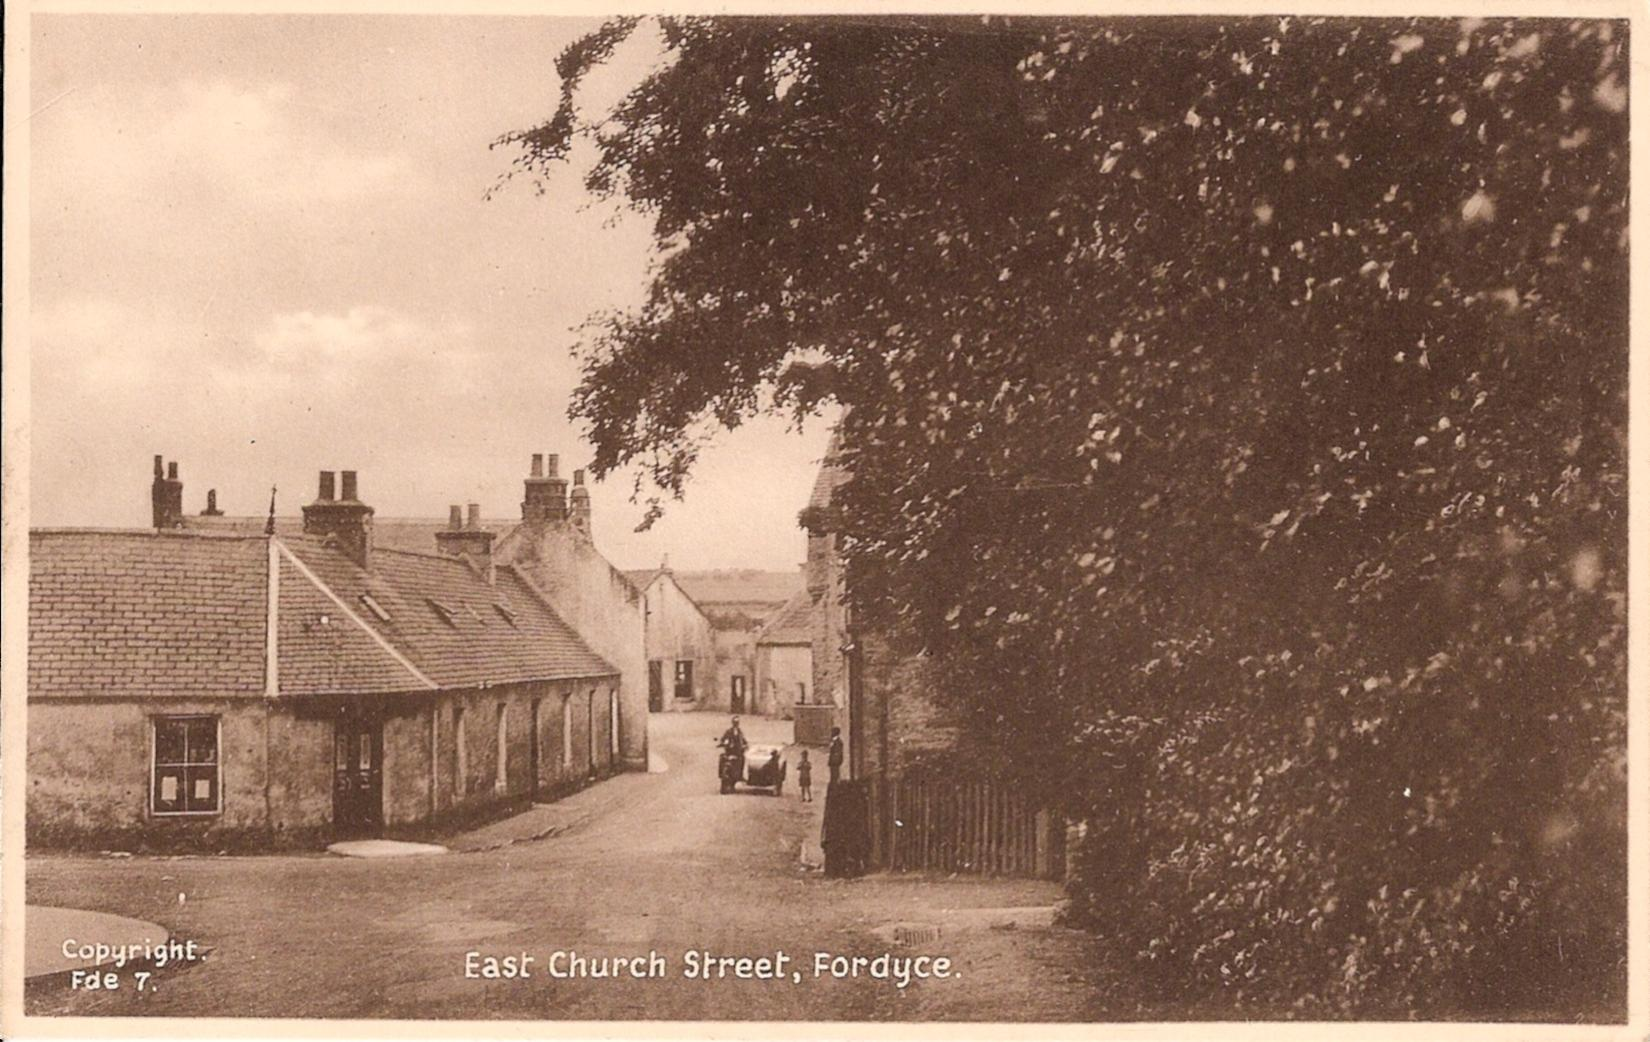 East Church Street, Fordyce